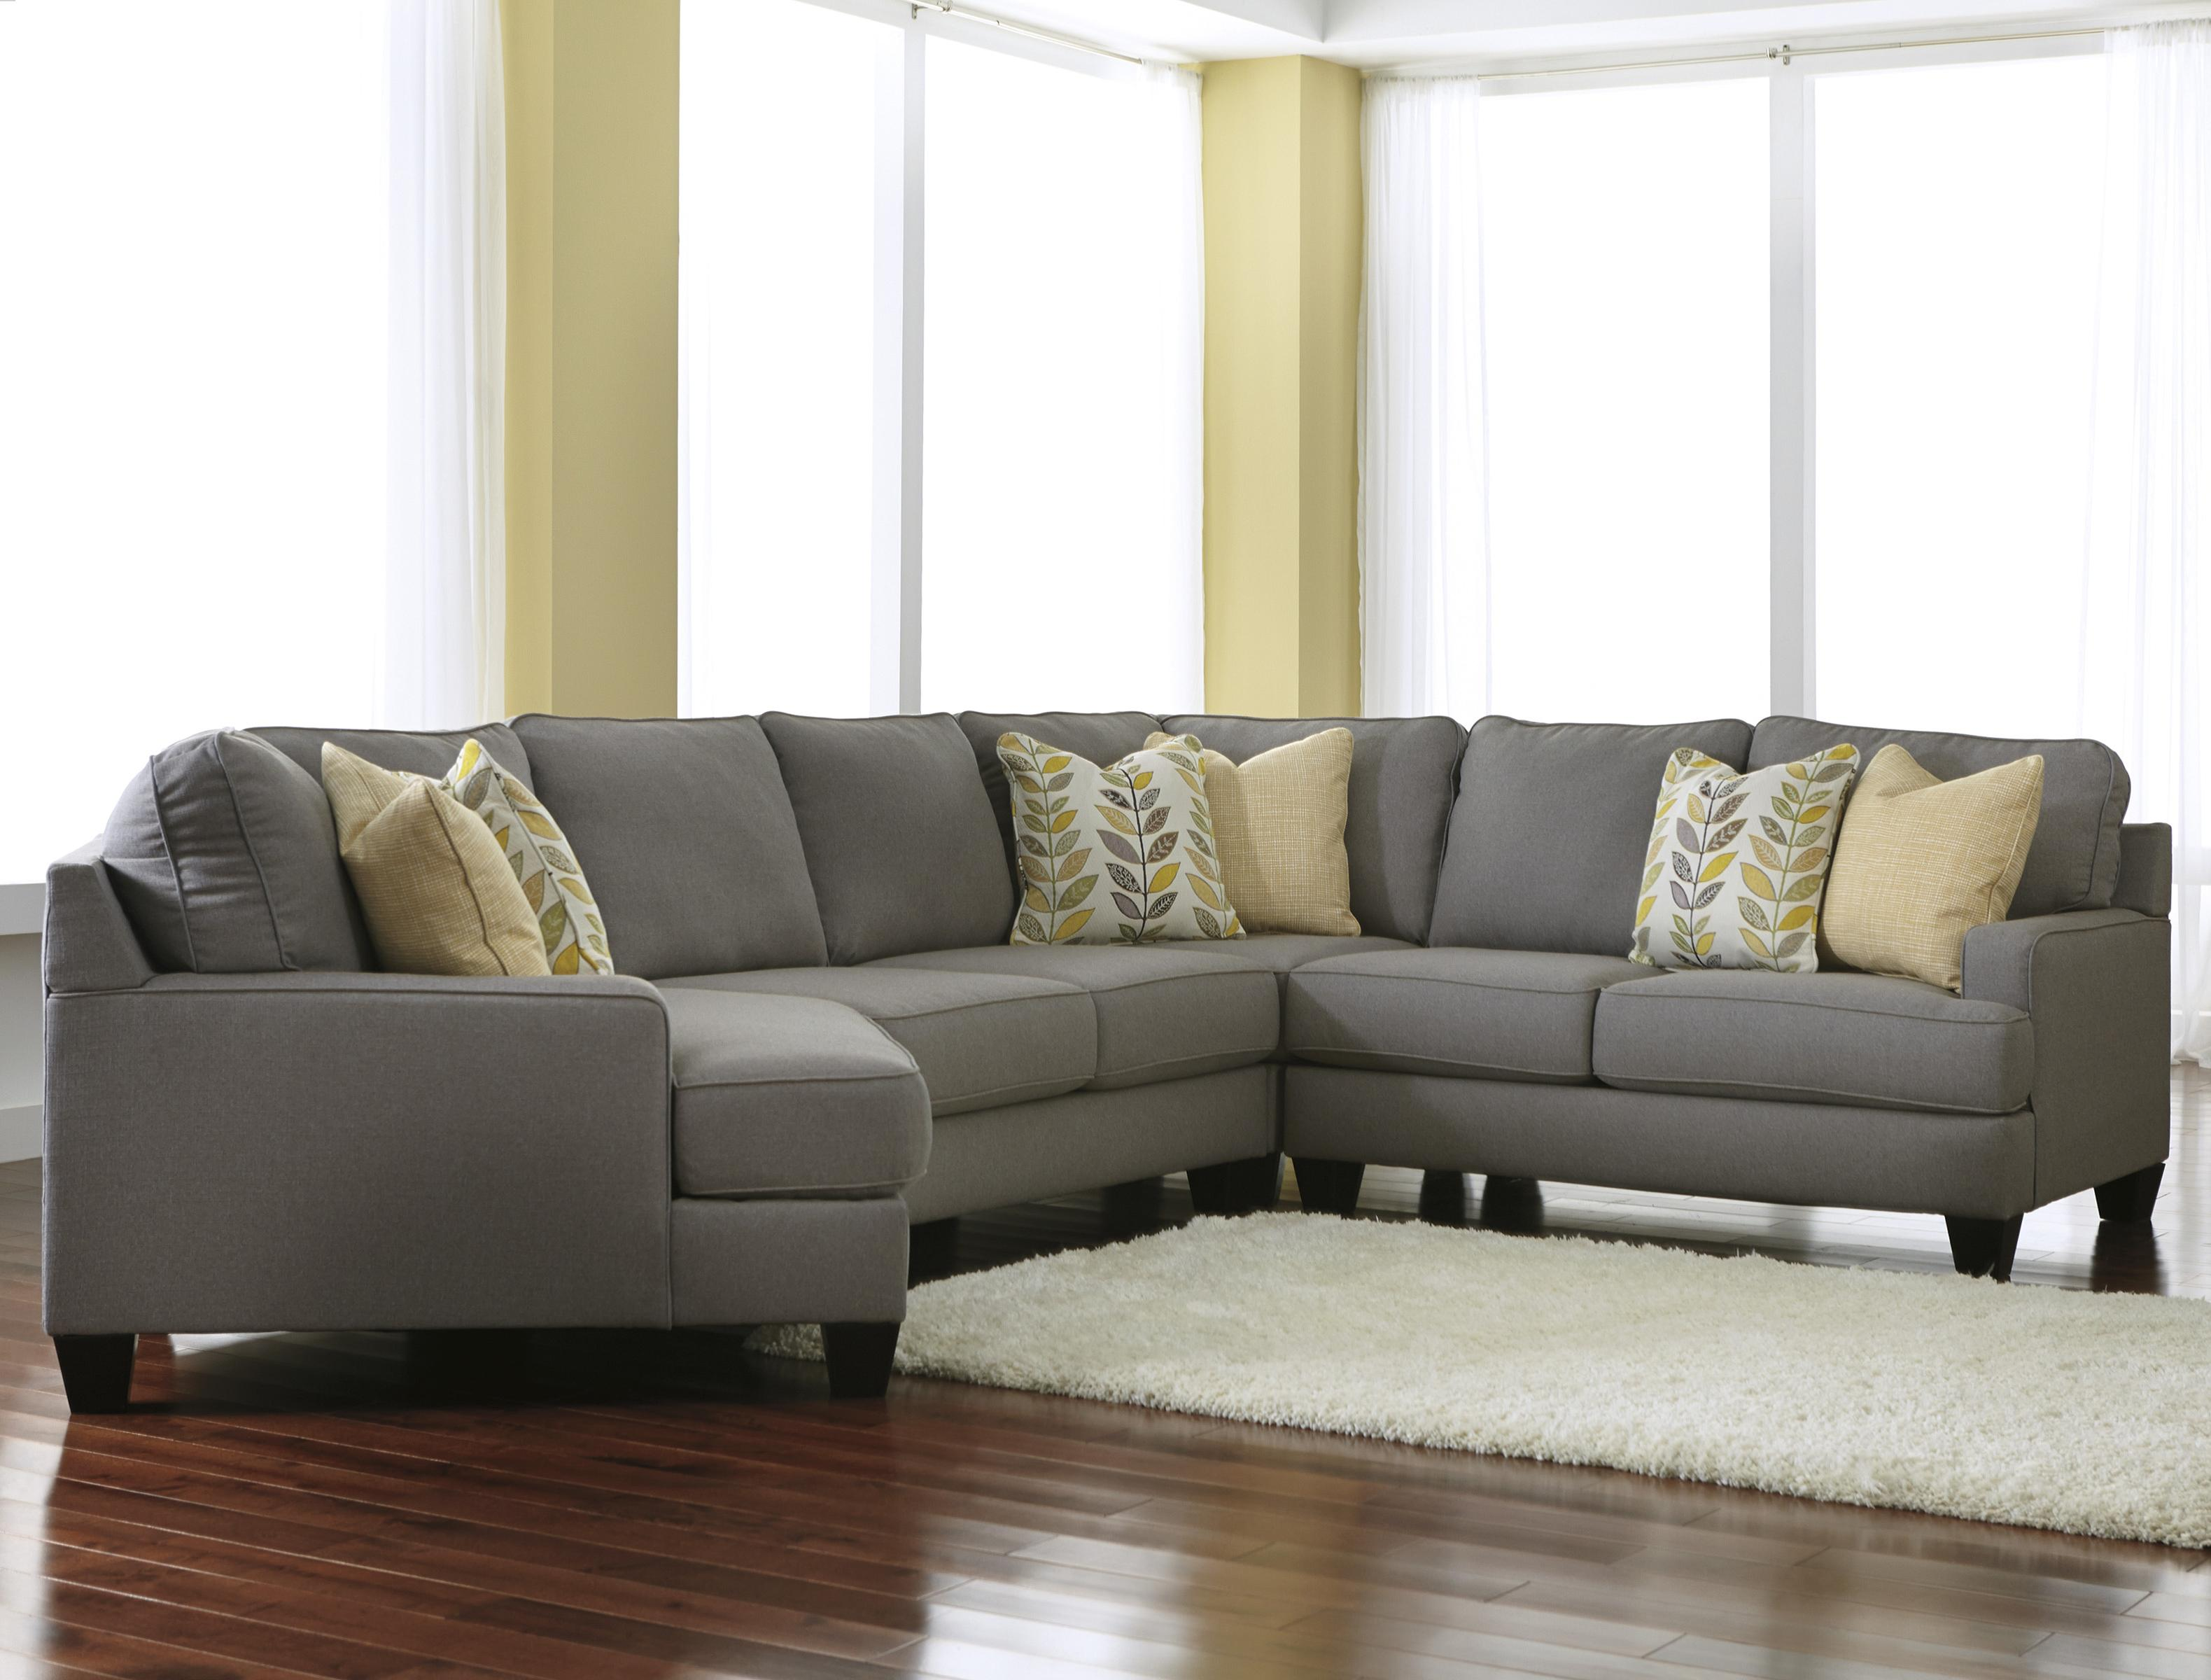 Incroyable Signature Design By Ashley Chamberly   Alloy 4 Piece Sectional Sofa With  Left Cuddler